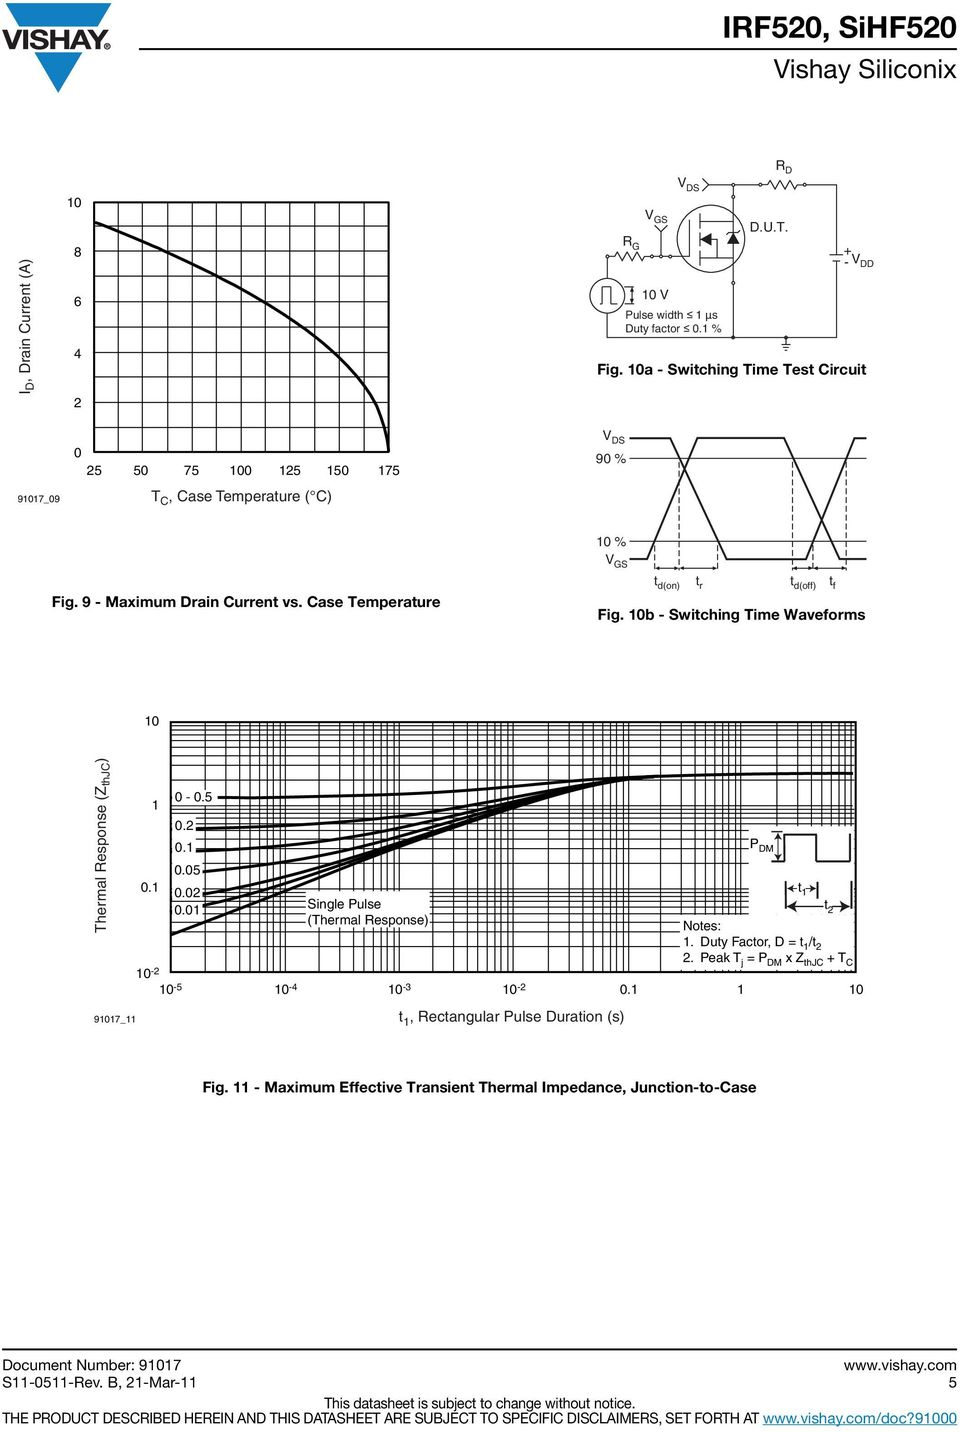 Case Temperature Fig. 10b Switching Time Waveforms 10 Thermal Response (Z thjc ) 1 0.1 0 0.5 0. 0.1 0.05 0.0 0.01 Single Pulse (Thermal Response) 10 10 5 10 4 10 3 10 0.